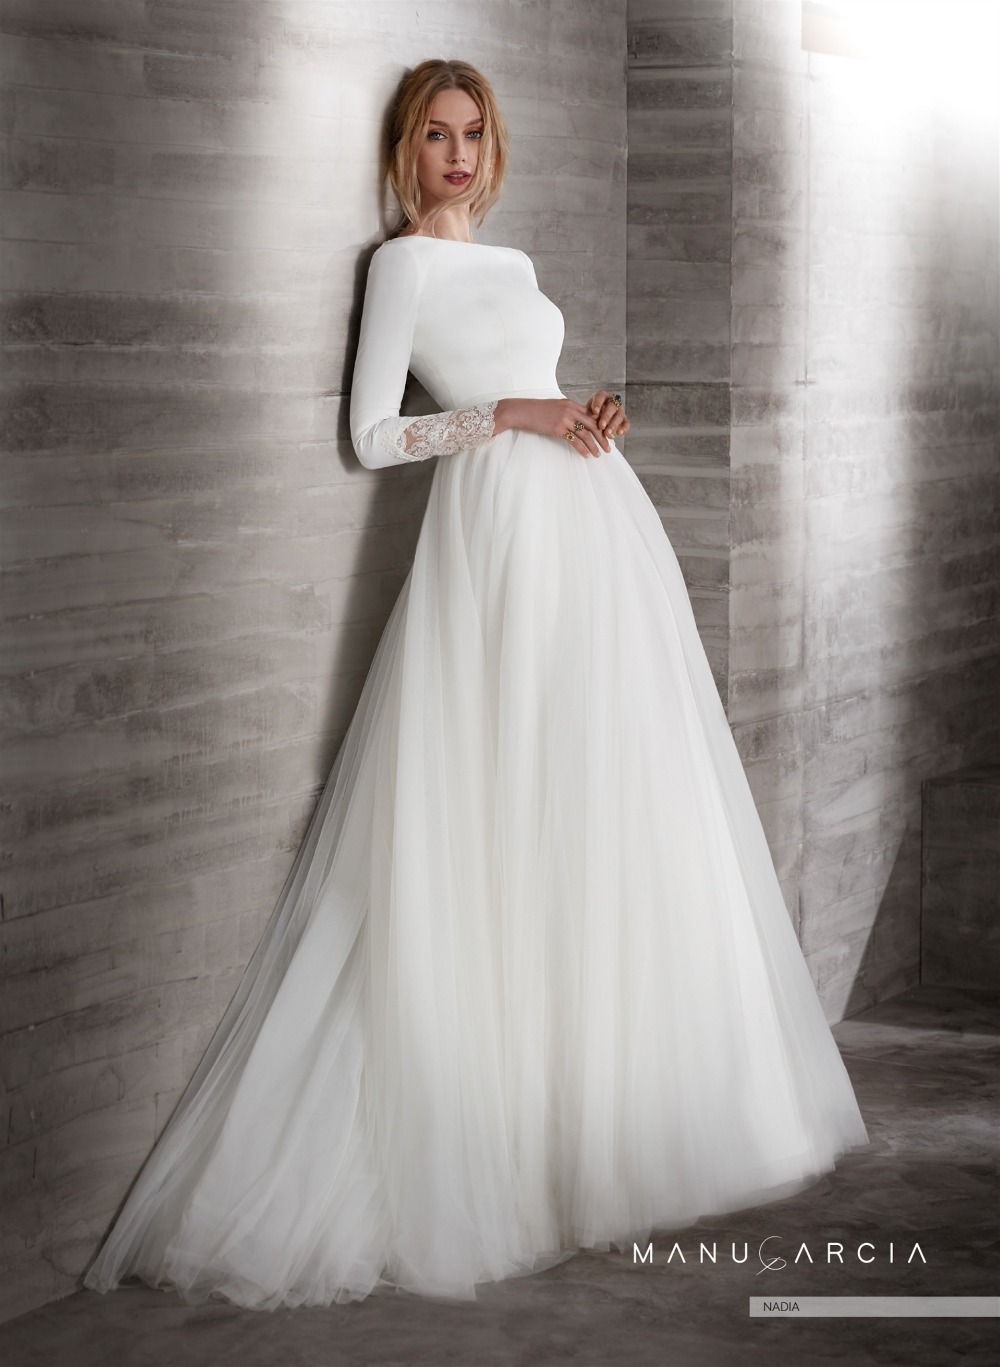 New Simple Crepe Tulle Modest Wedding Dresses With 3/4 Sleeves Boat Neck Covered Back Country Western Sleeved Bridal Gowns